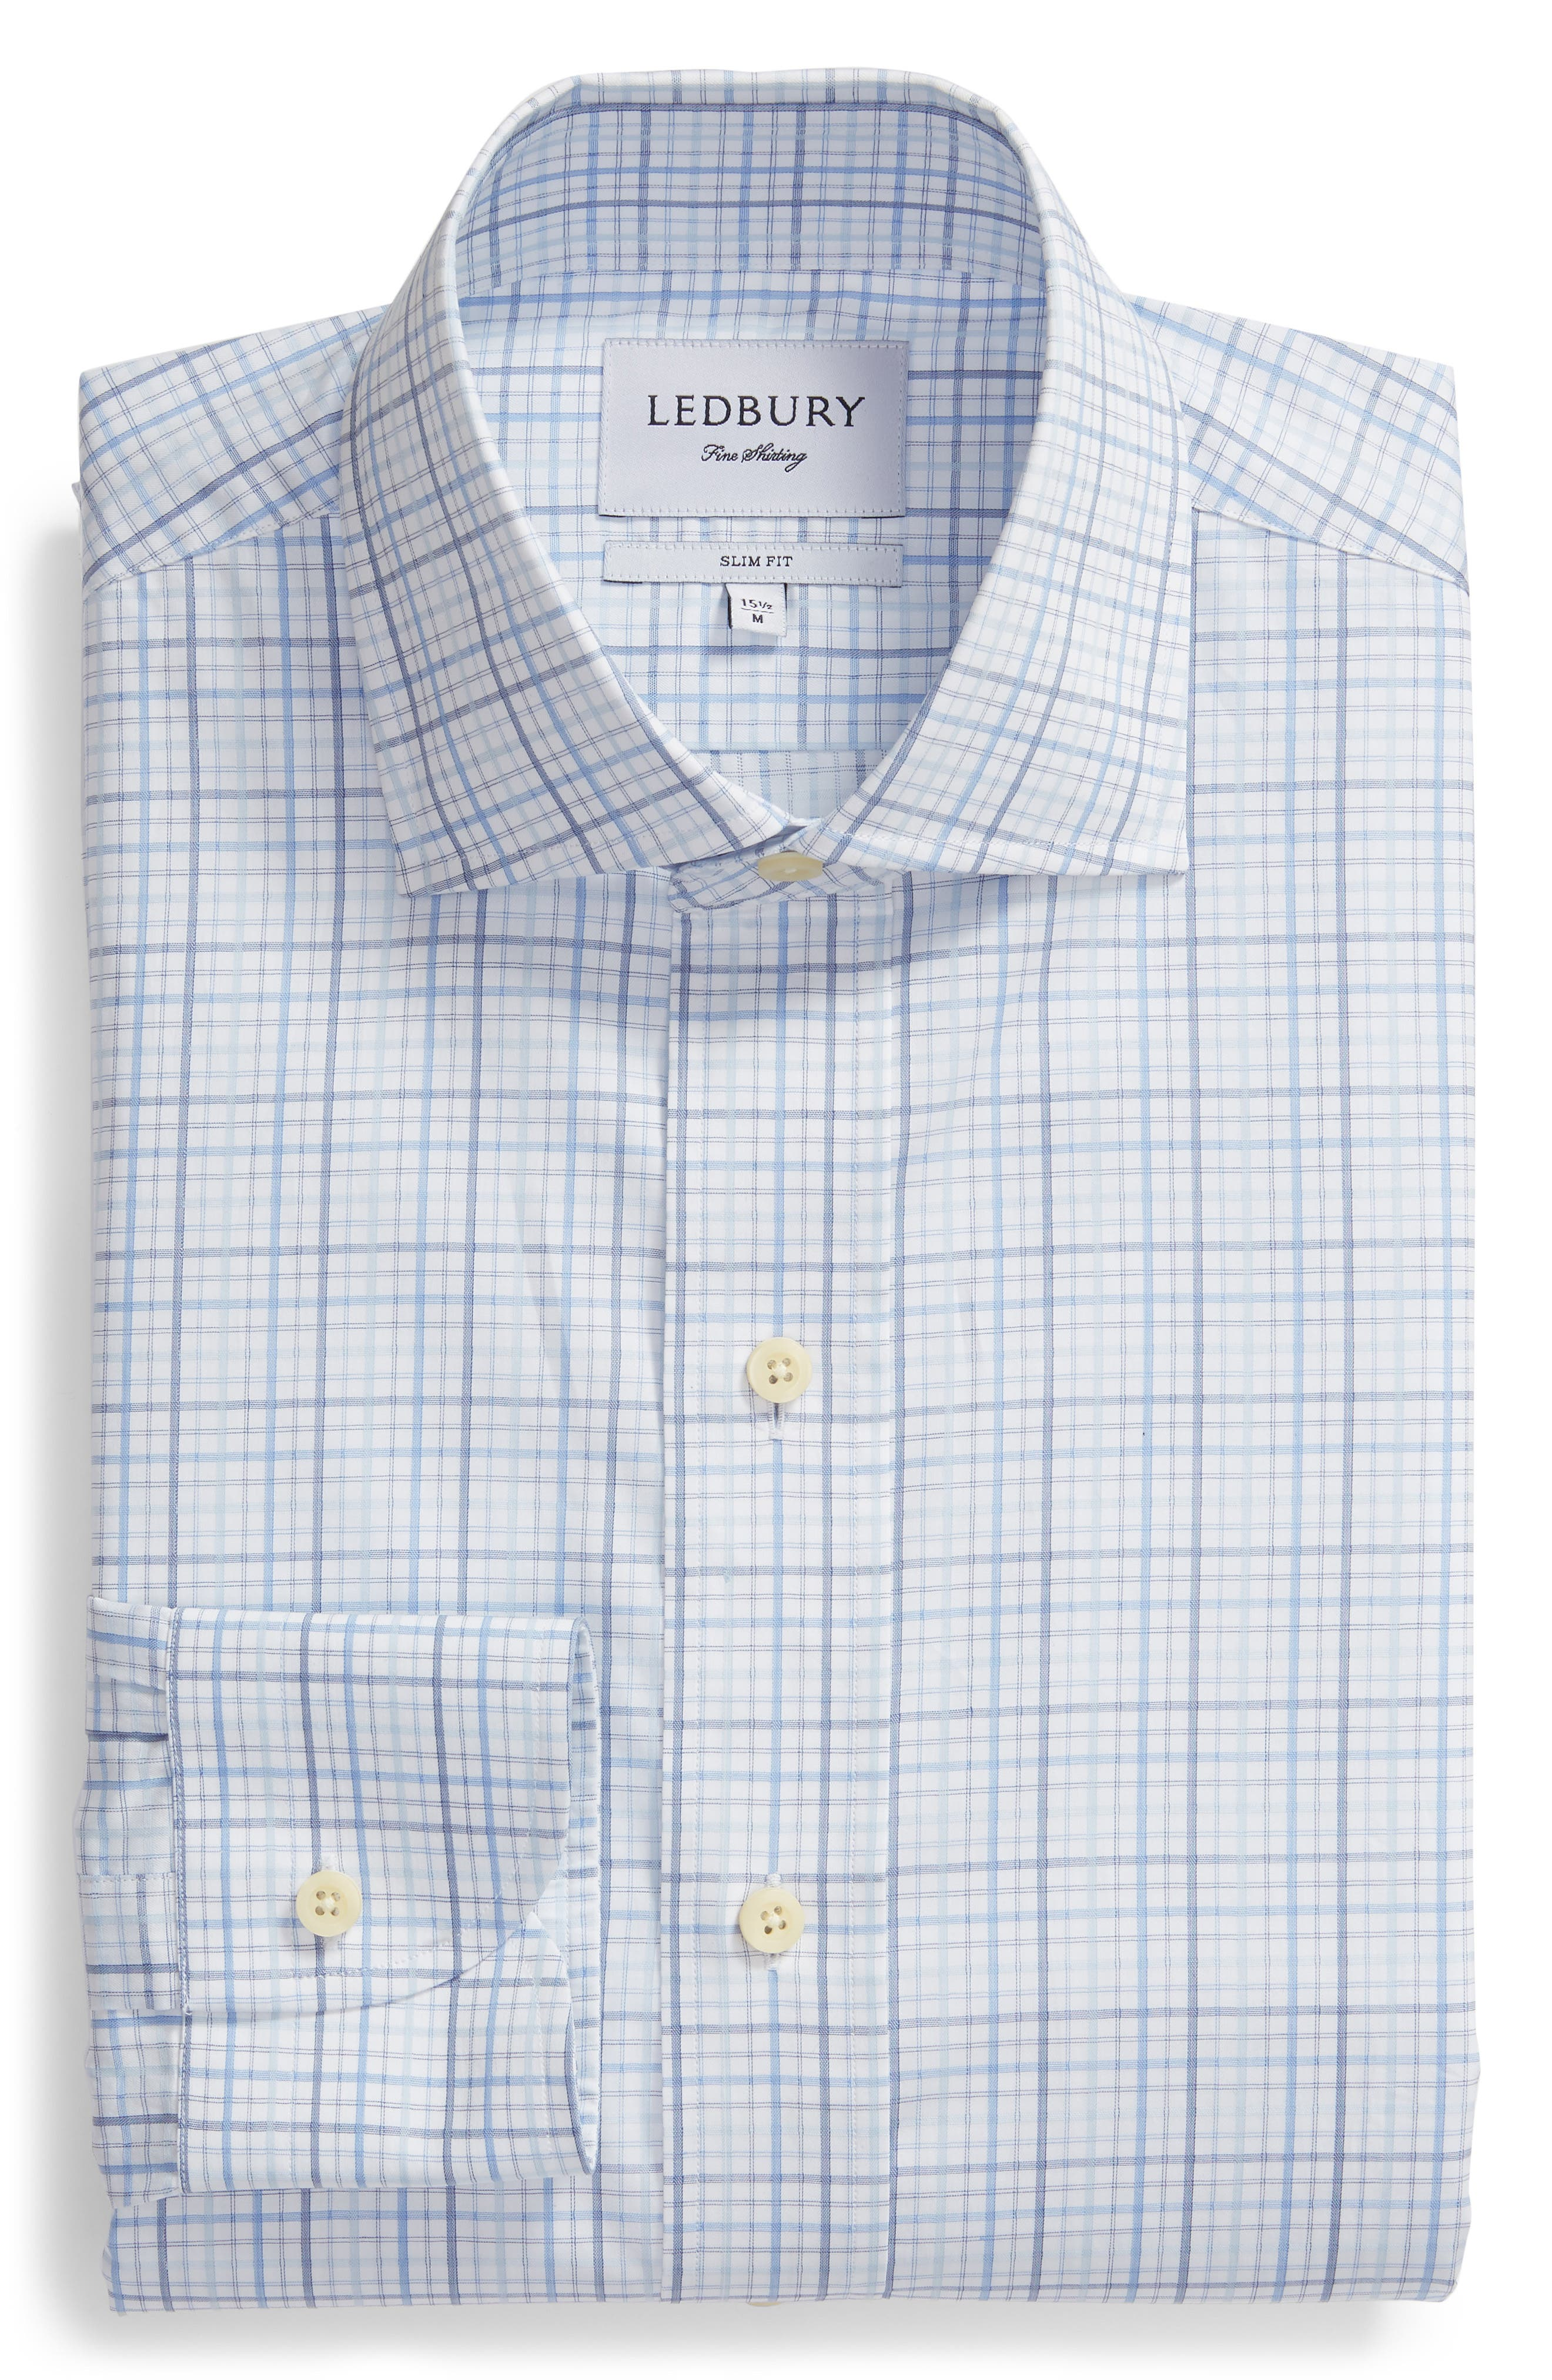 Drazin Trim Fit Check Dress Shirt,                             Alternate thumbnail 5, color,                             BLUE